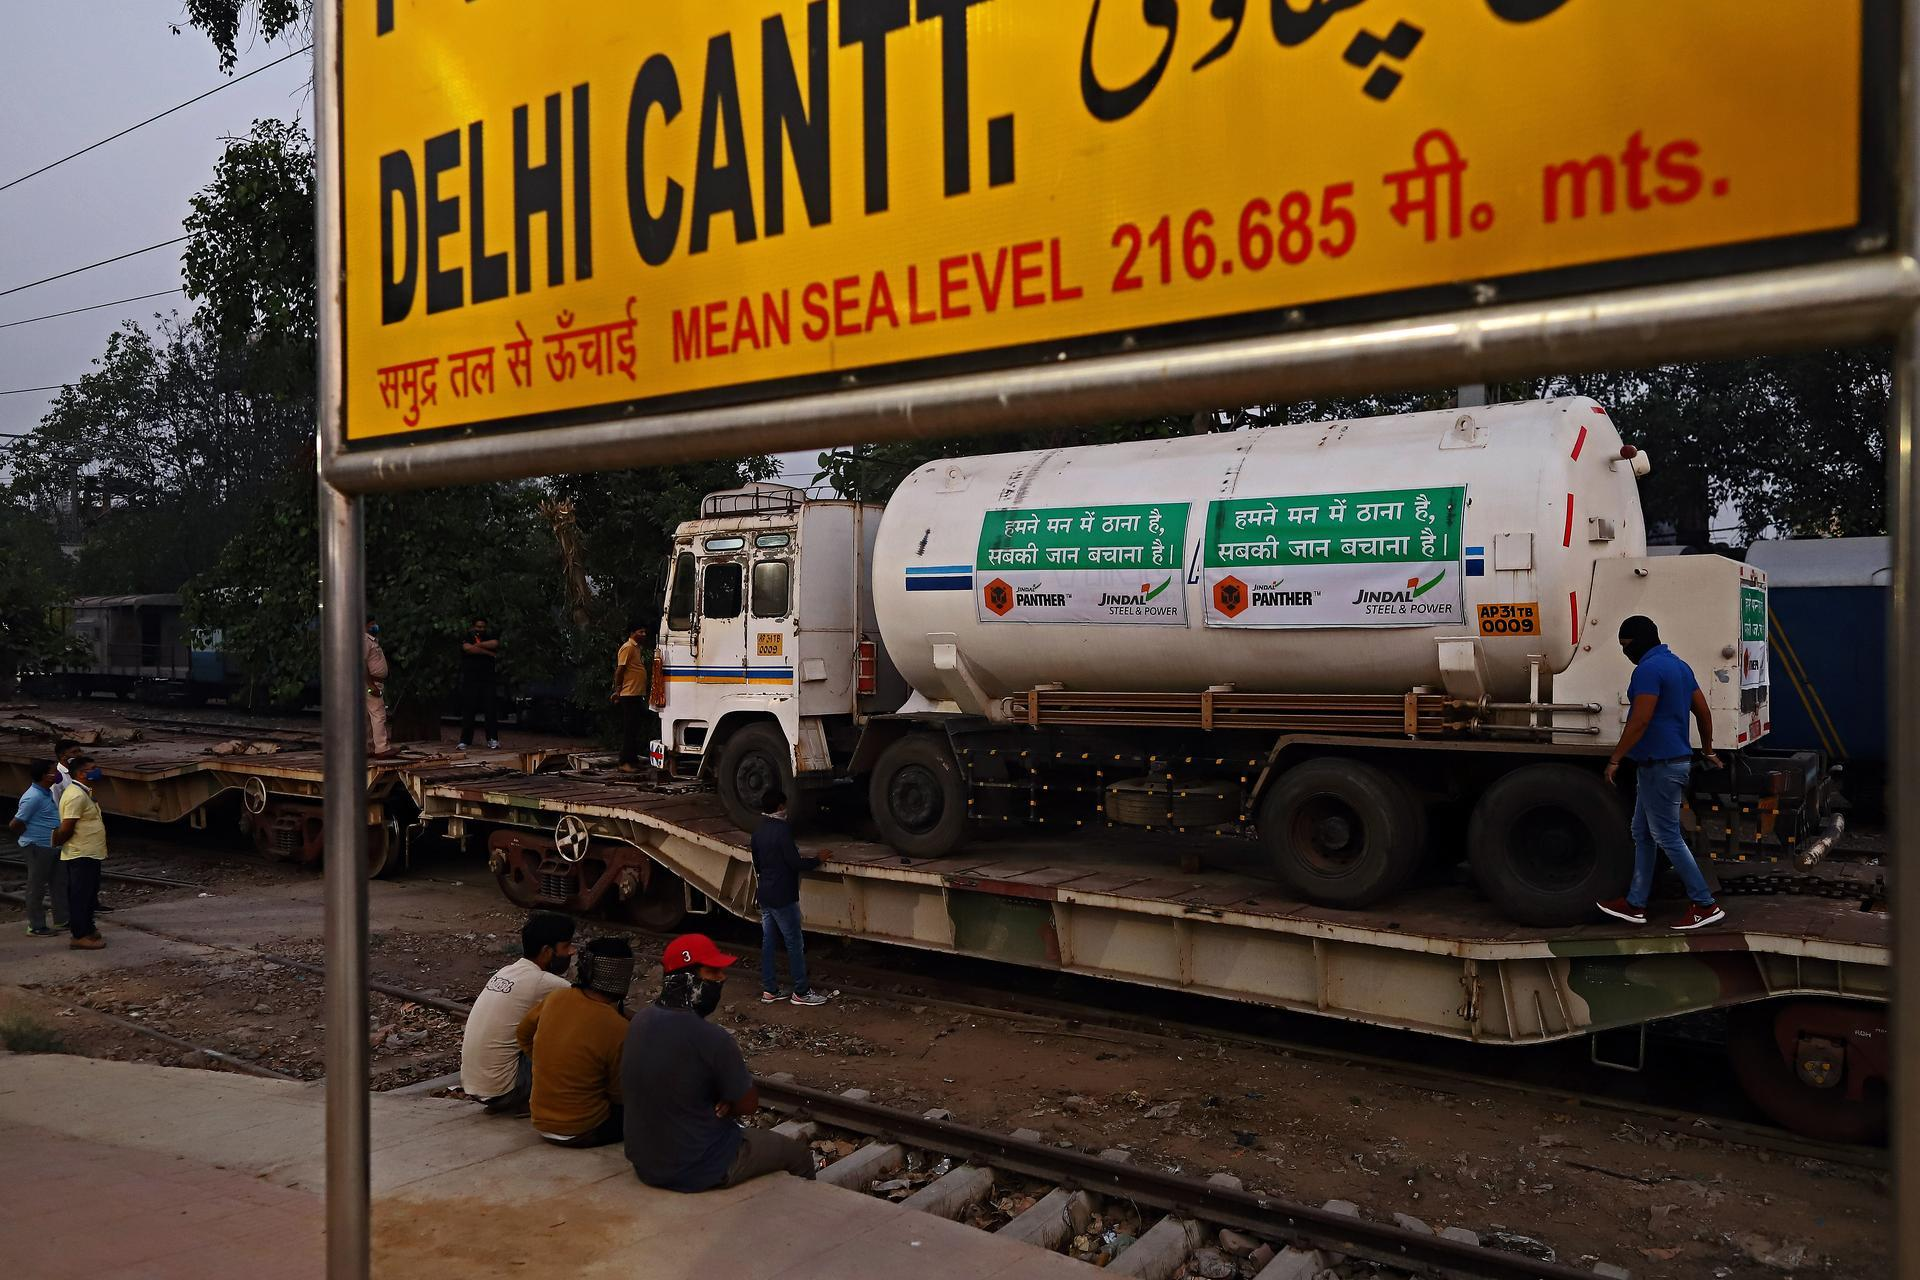 Indian authorities are using the country's vast railway network to transport oxygen across the country. Bloomberg